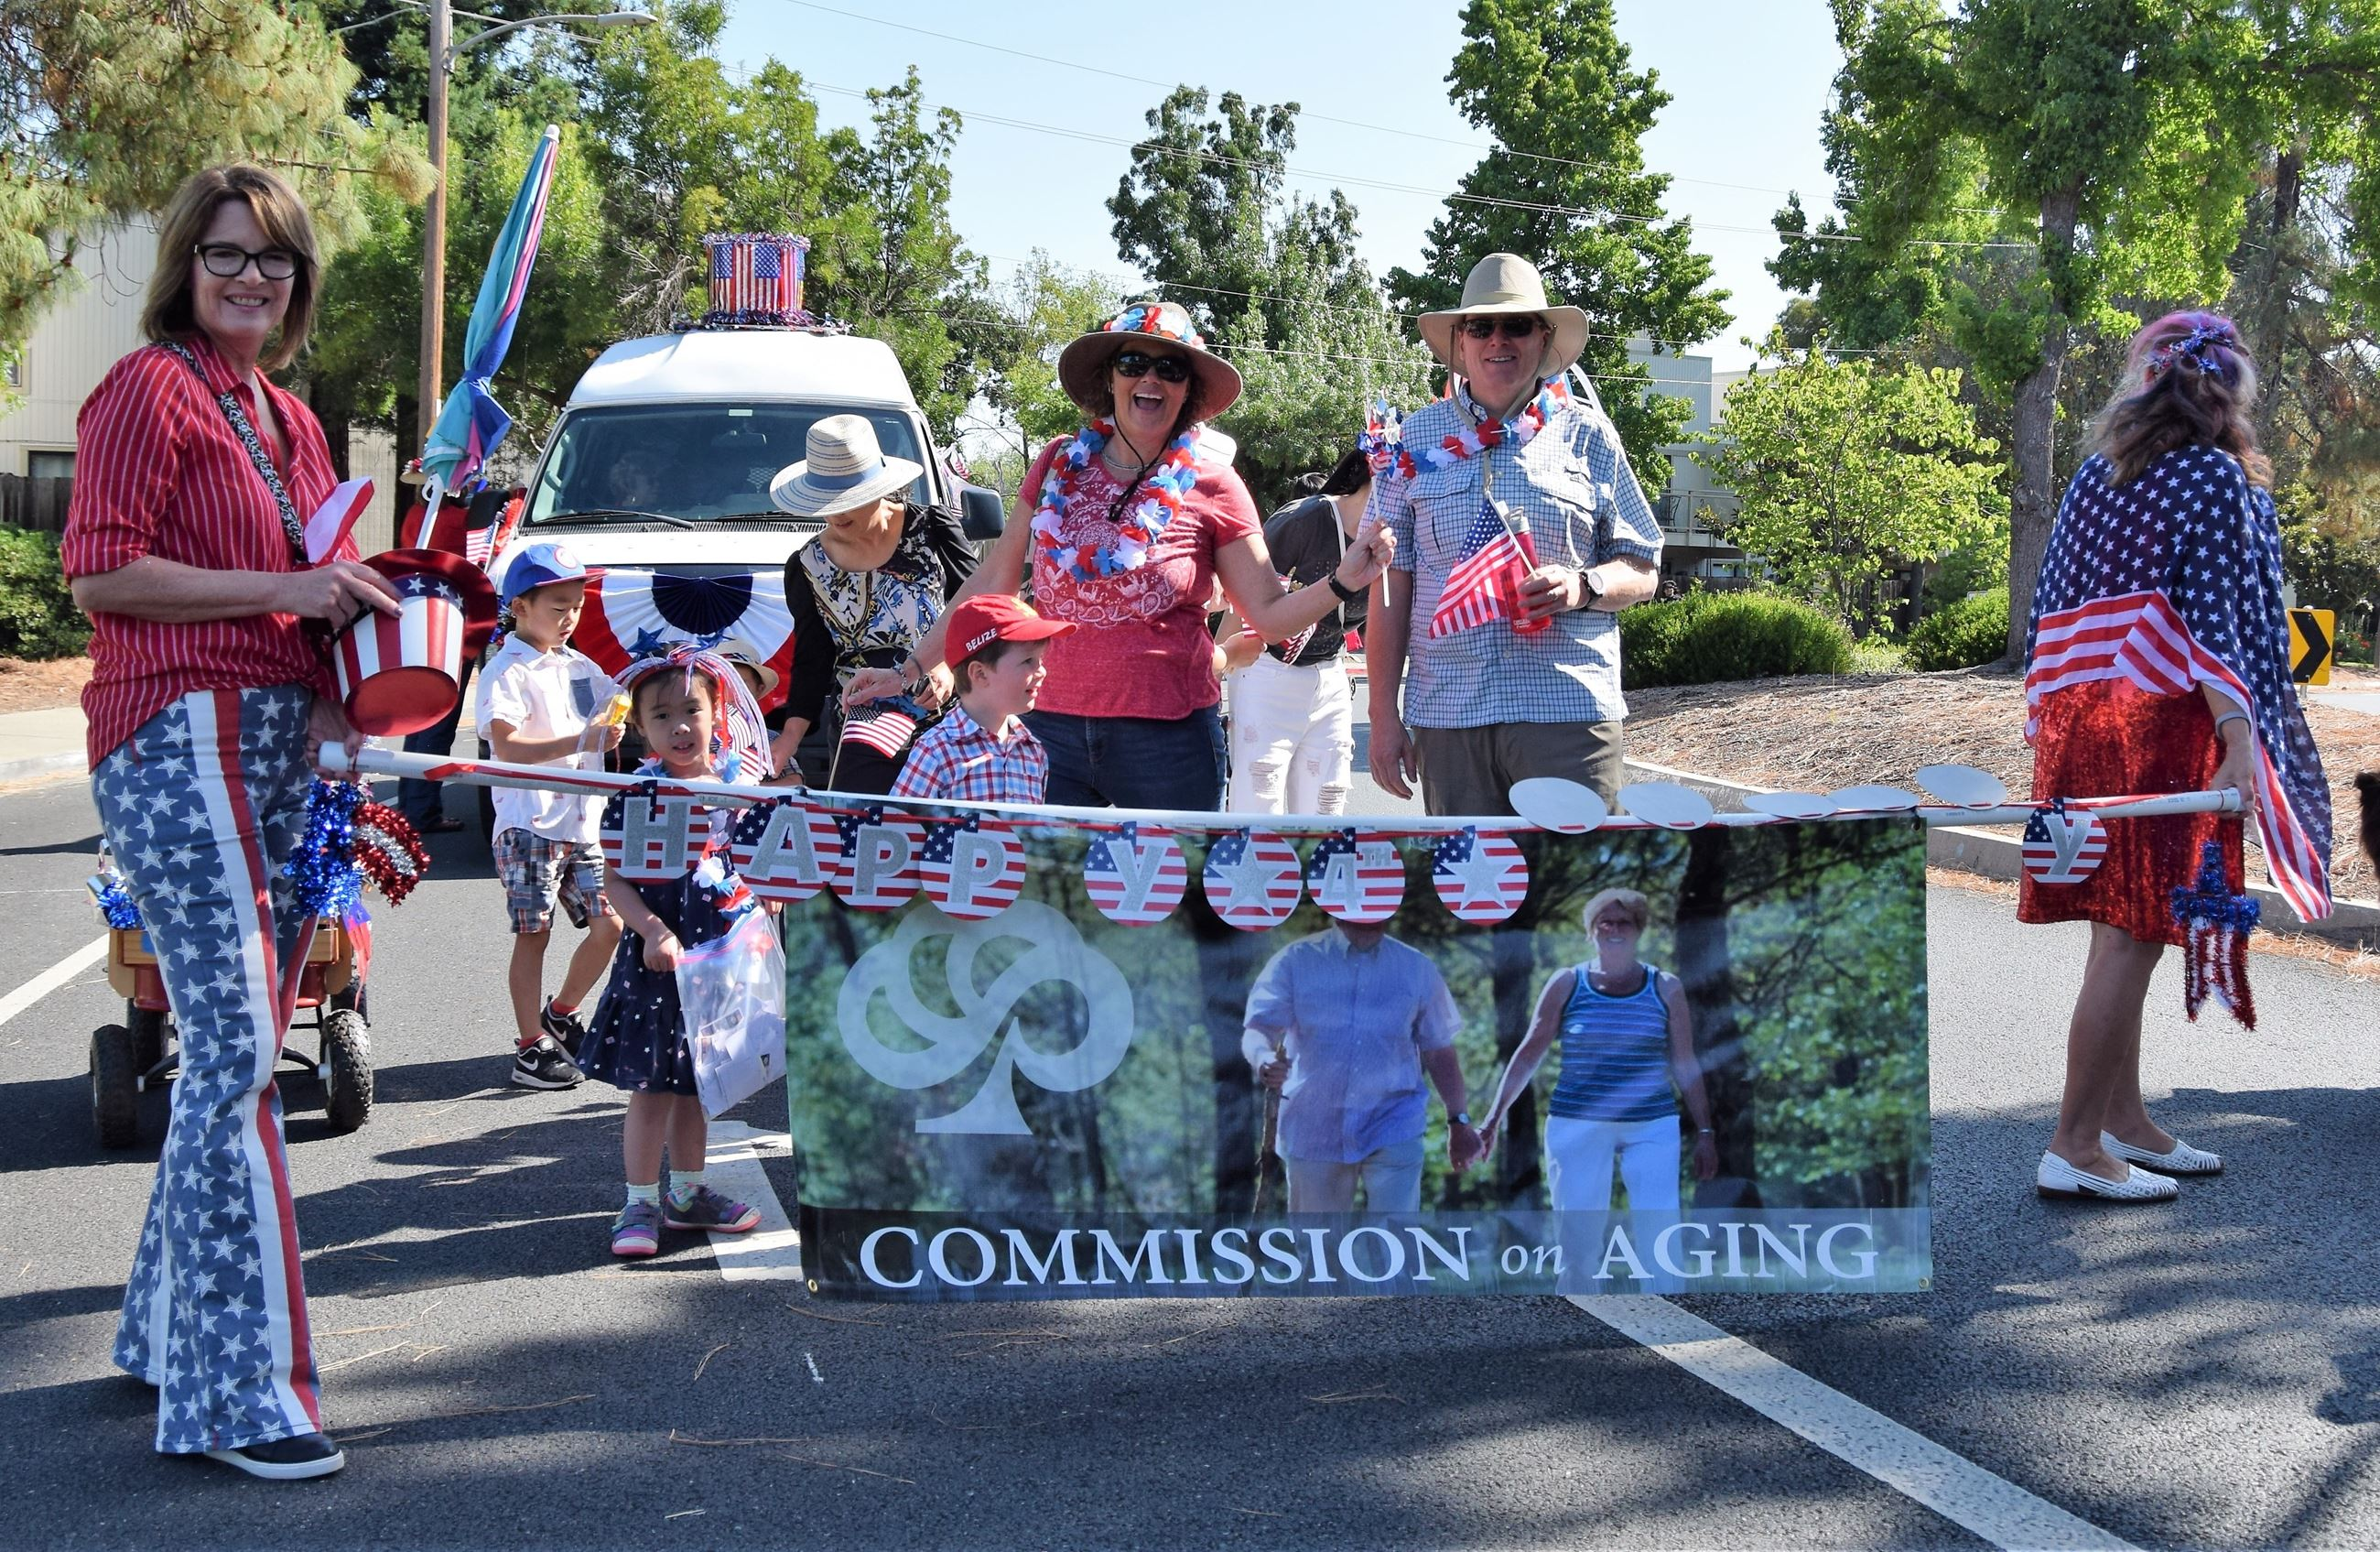 Parade participants holding the commission banner in front of the senior van